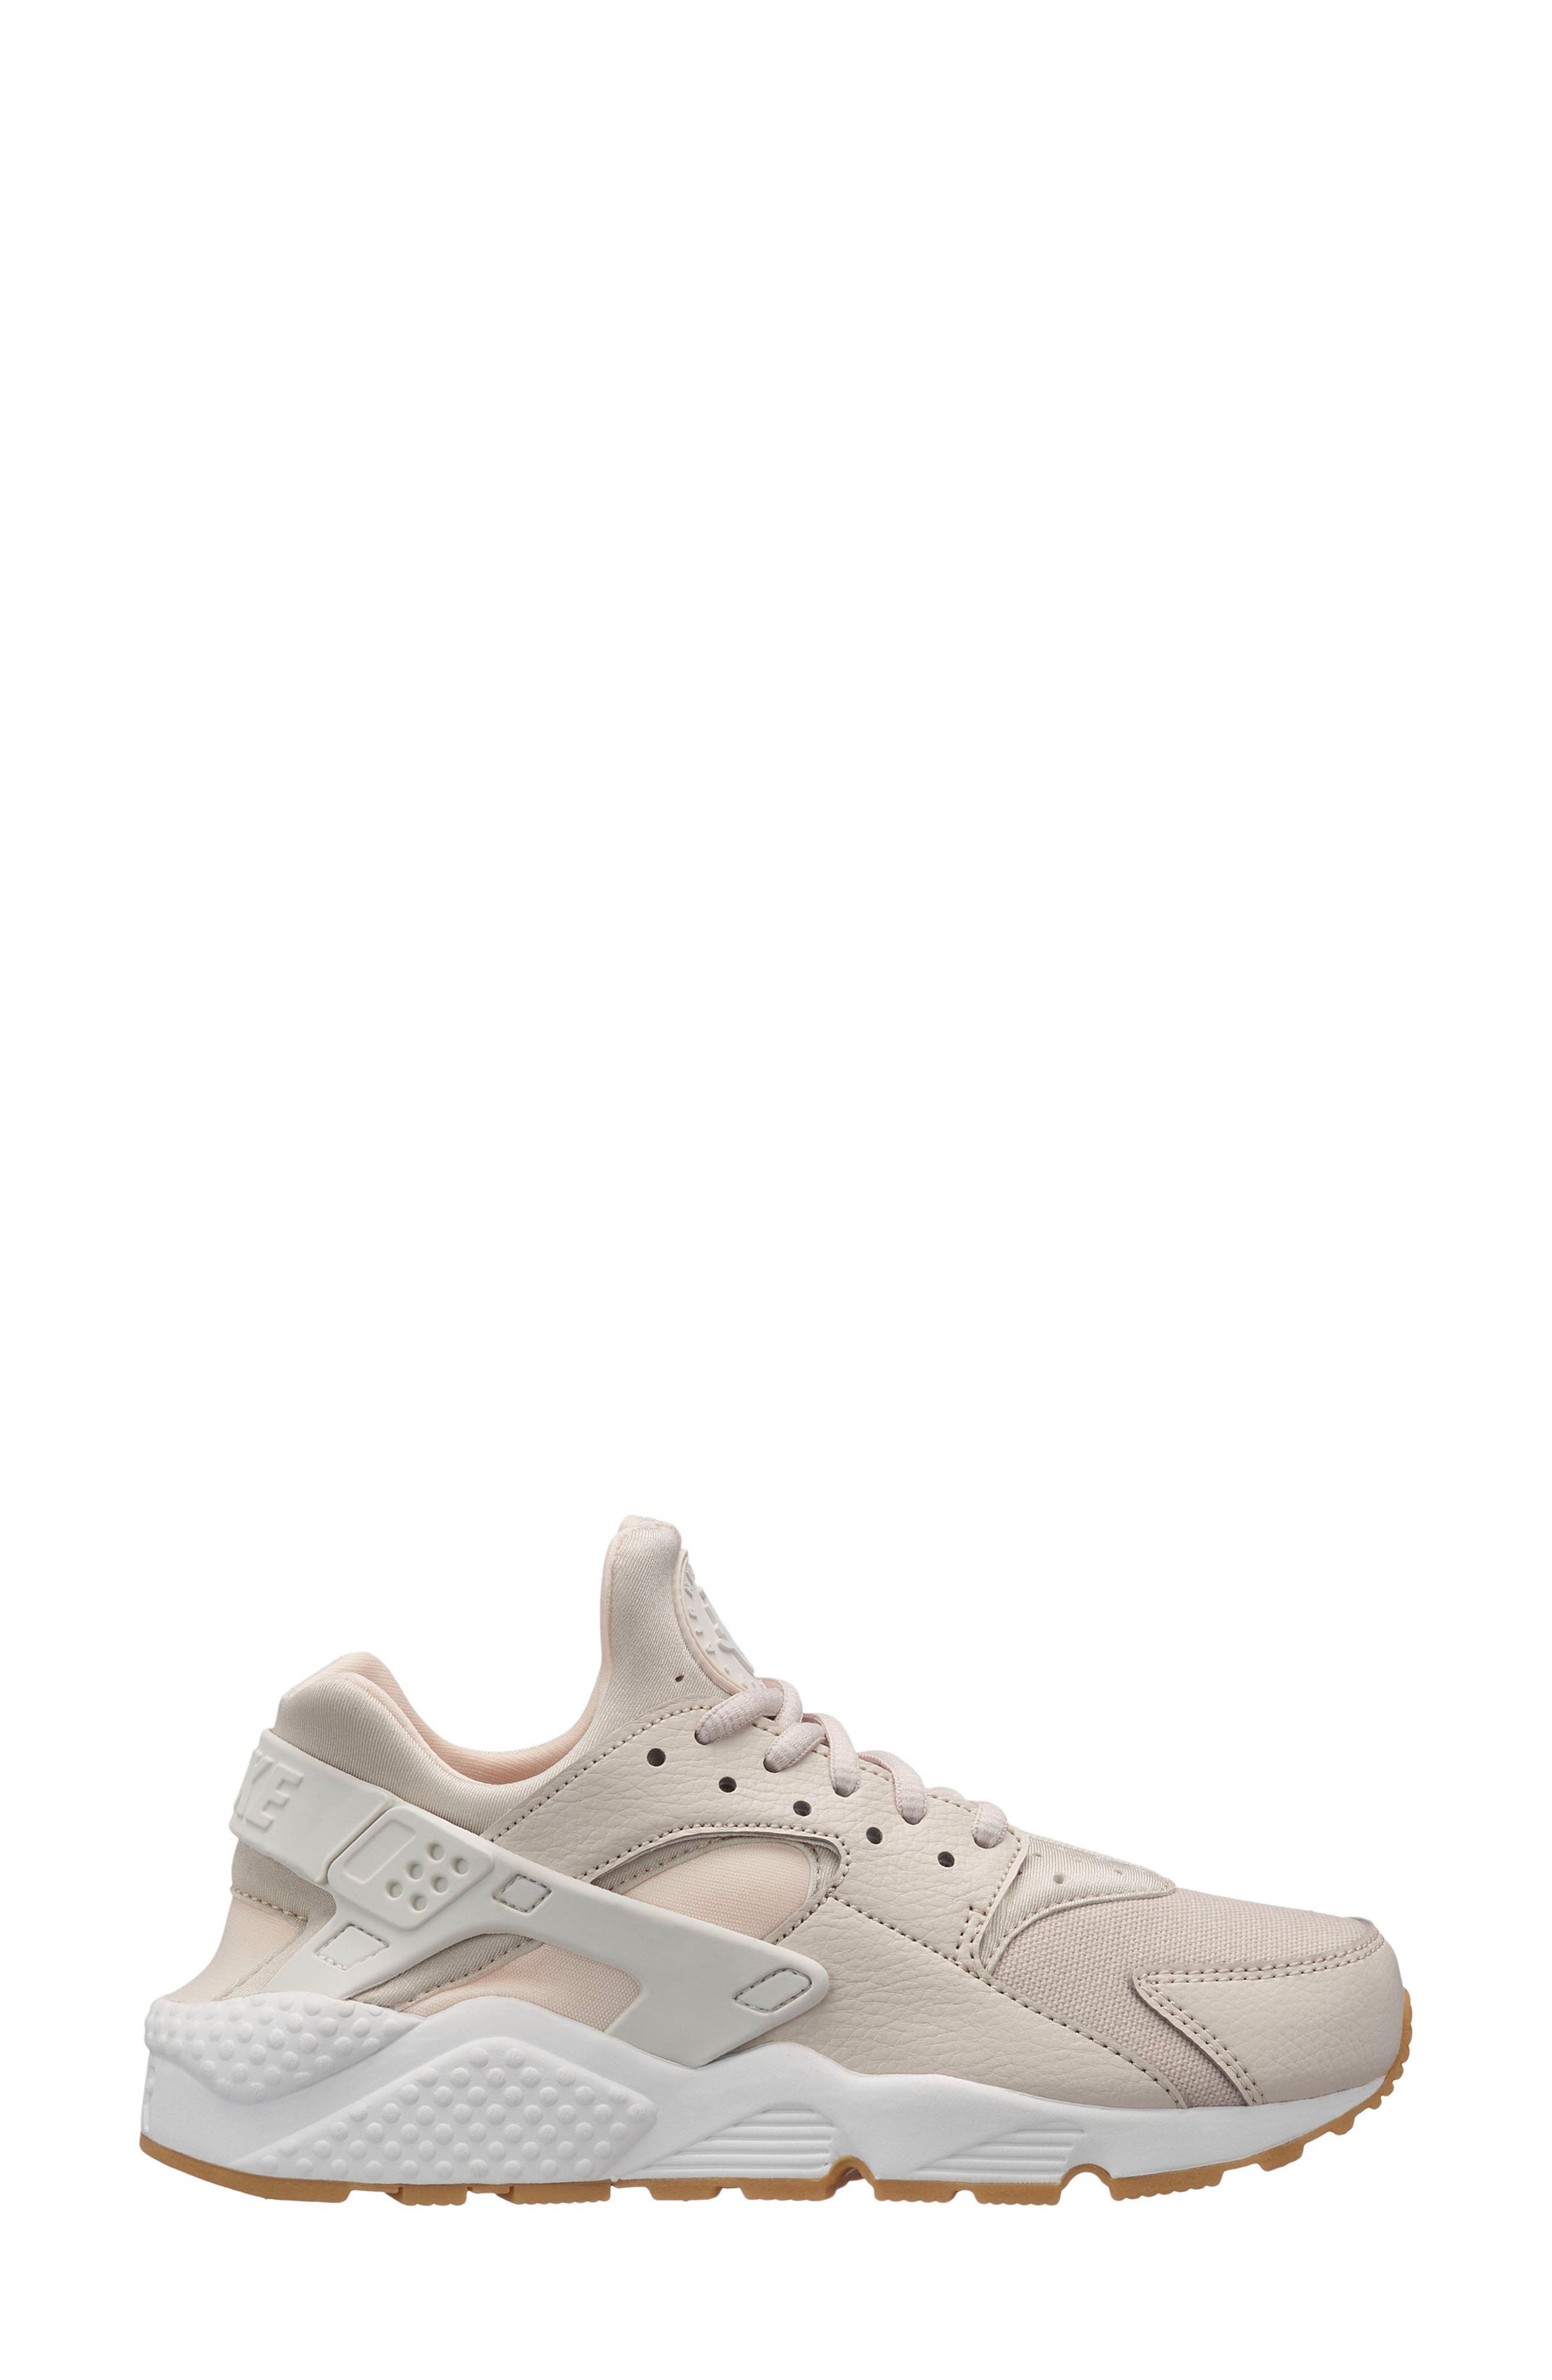 Air Huarache Run Sneaker,                         Main,                         color, GREY